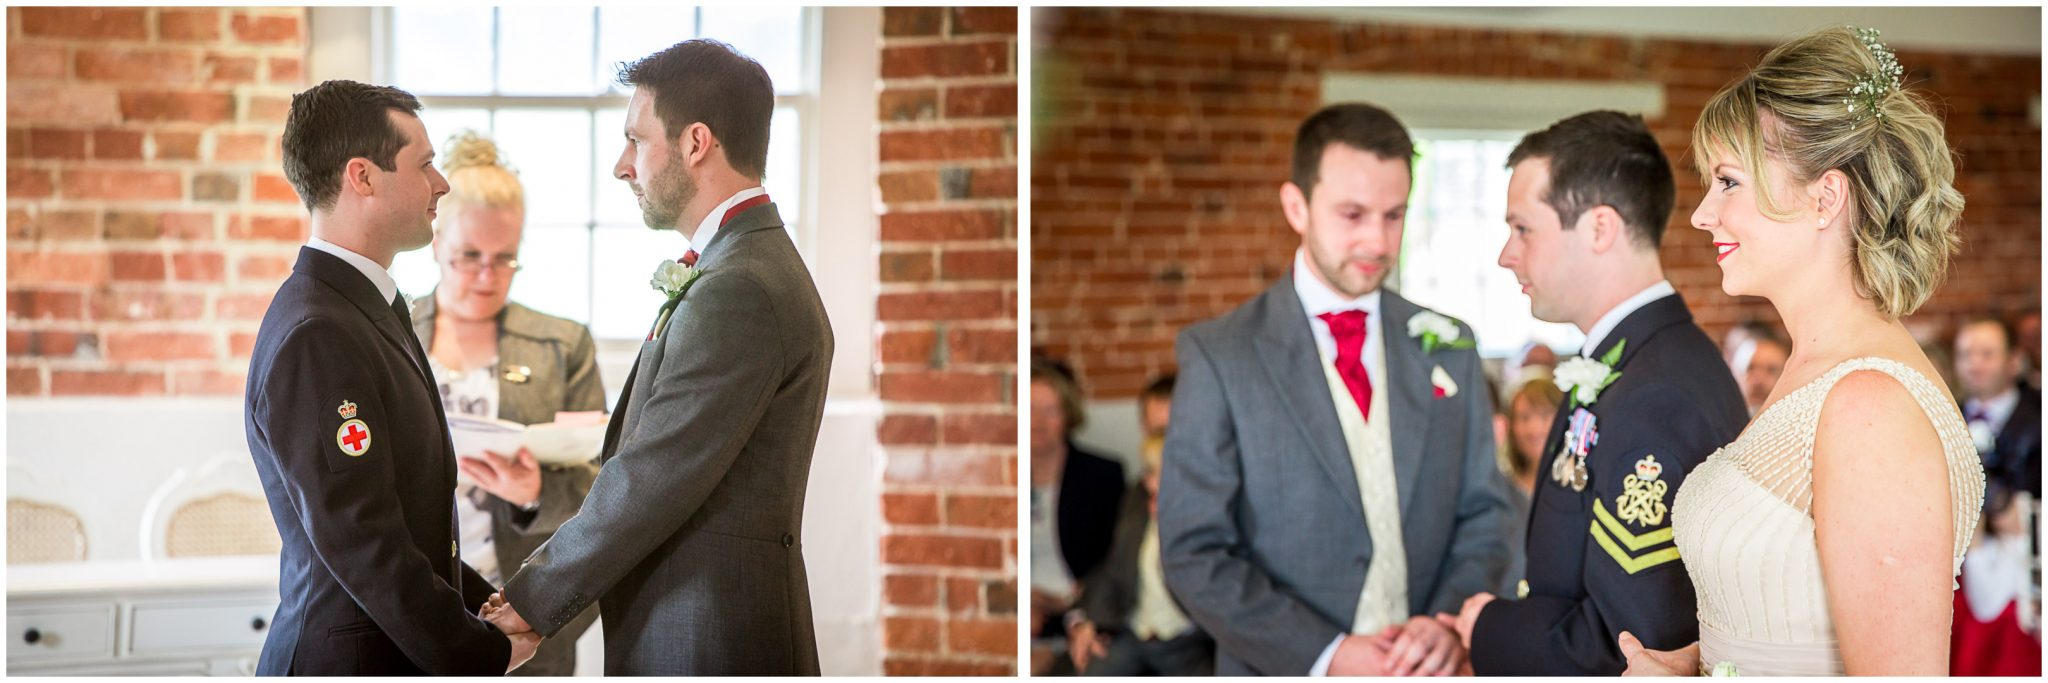 Sopley wedding photographer grooms face each other during ceremony